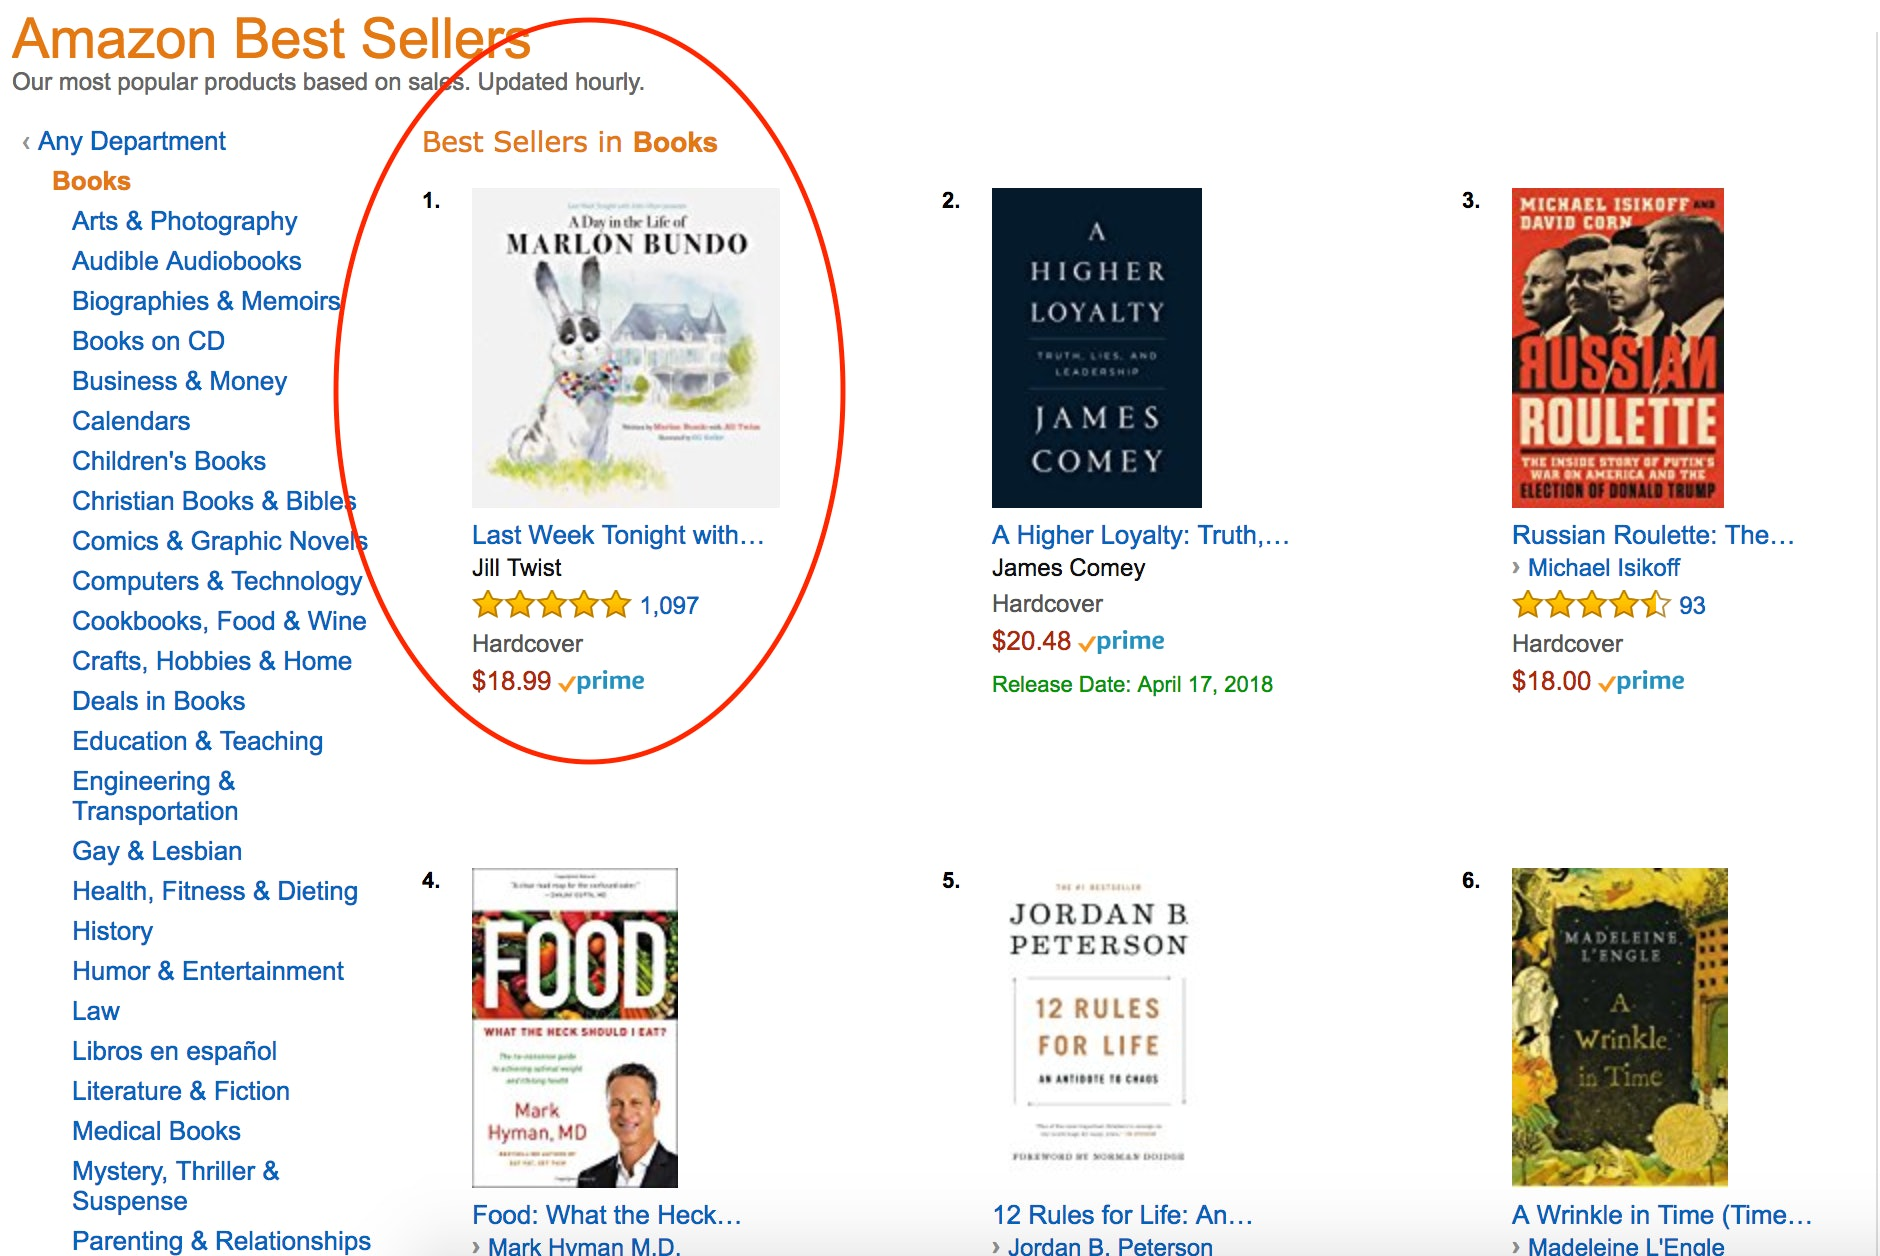 'A Day in the Life of Marlon Bundo' was the top-selling book on Amazon.com on Monday, March 19, 2018.